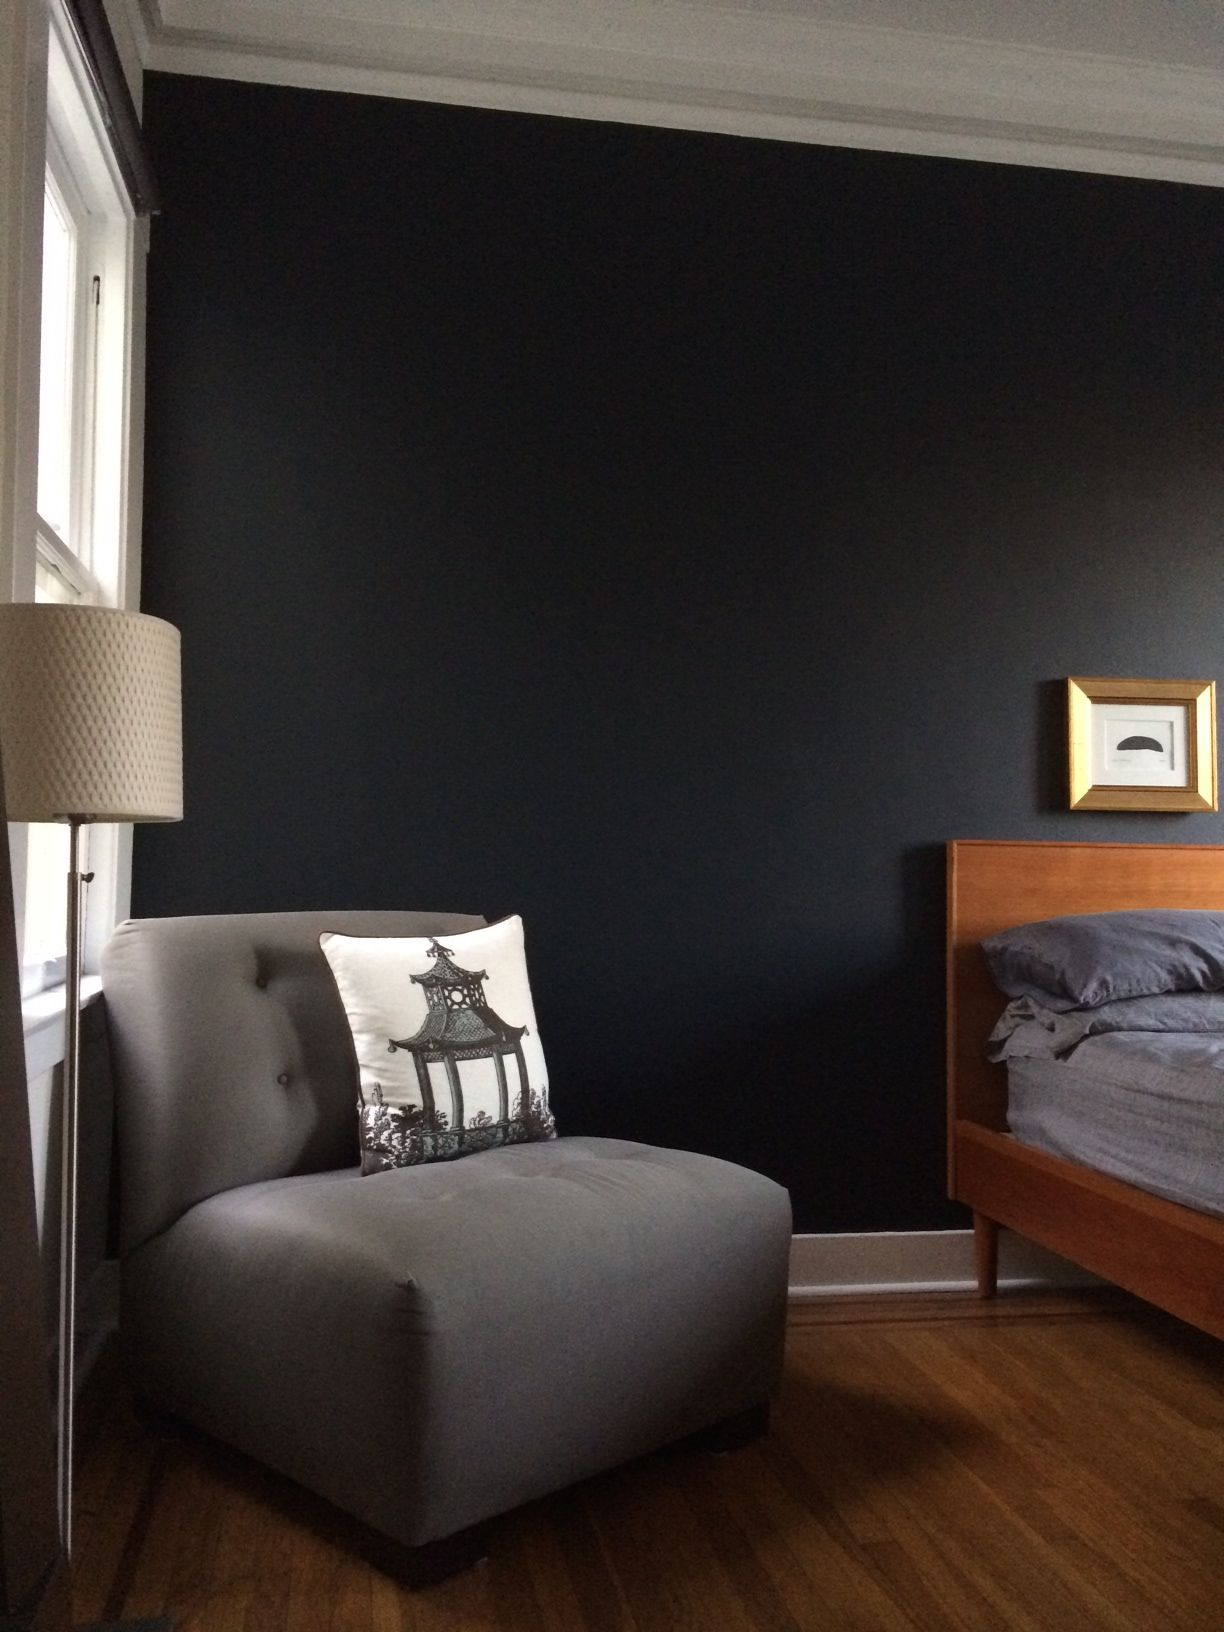 Bedroom wall painted in farrow ball railings wall color in 2019 deco appartement for Farrow and ball railings living room